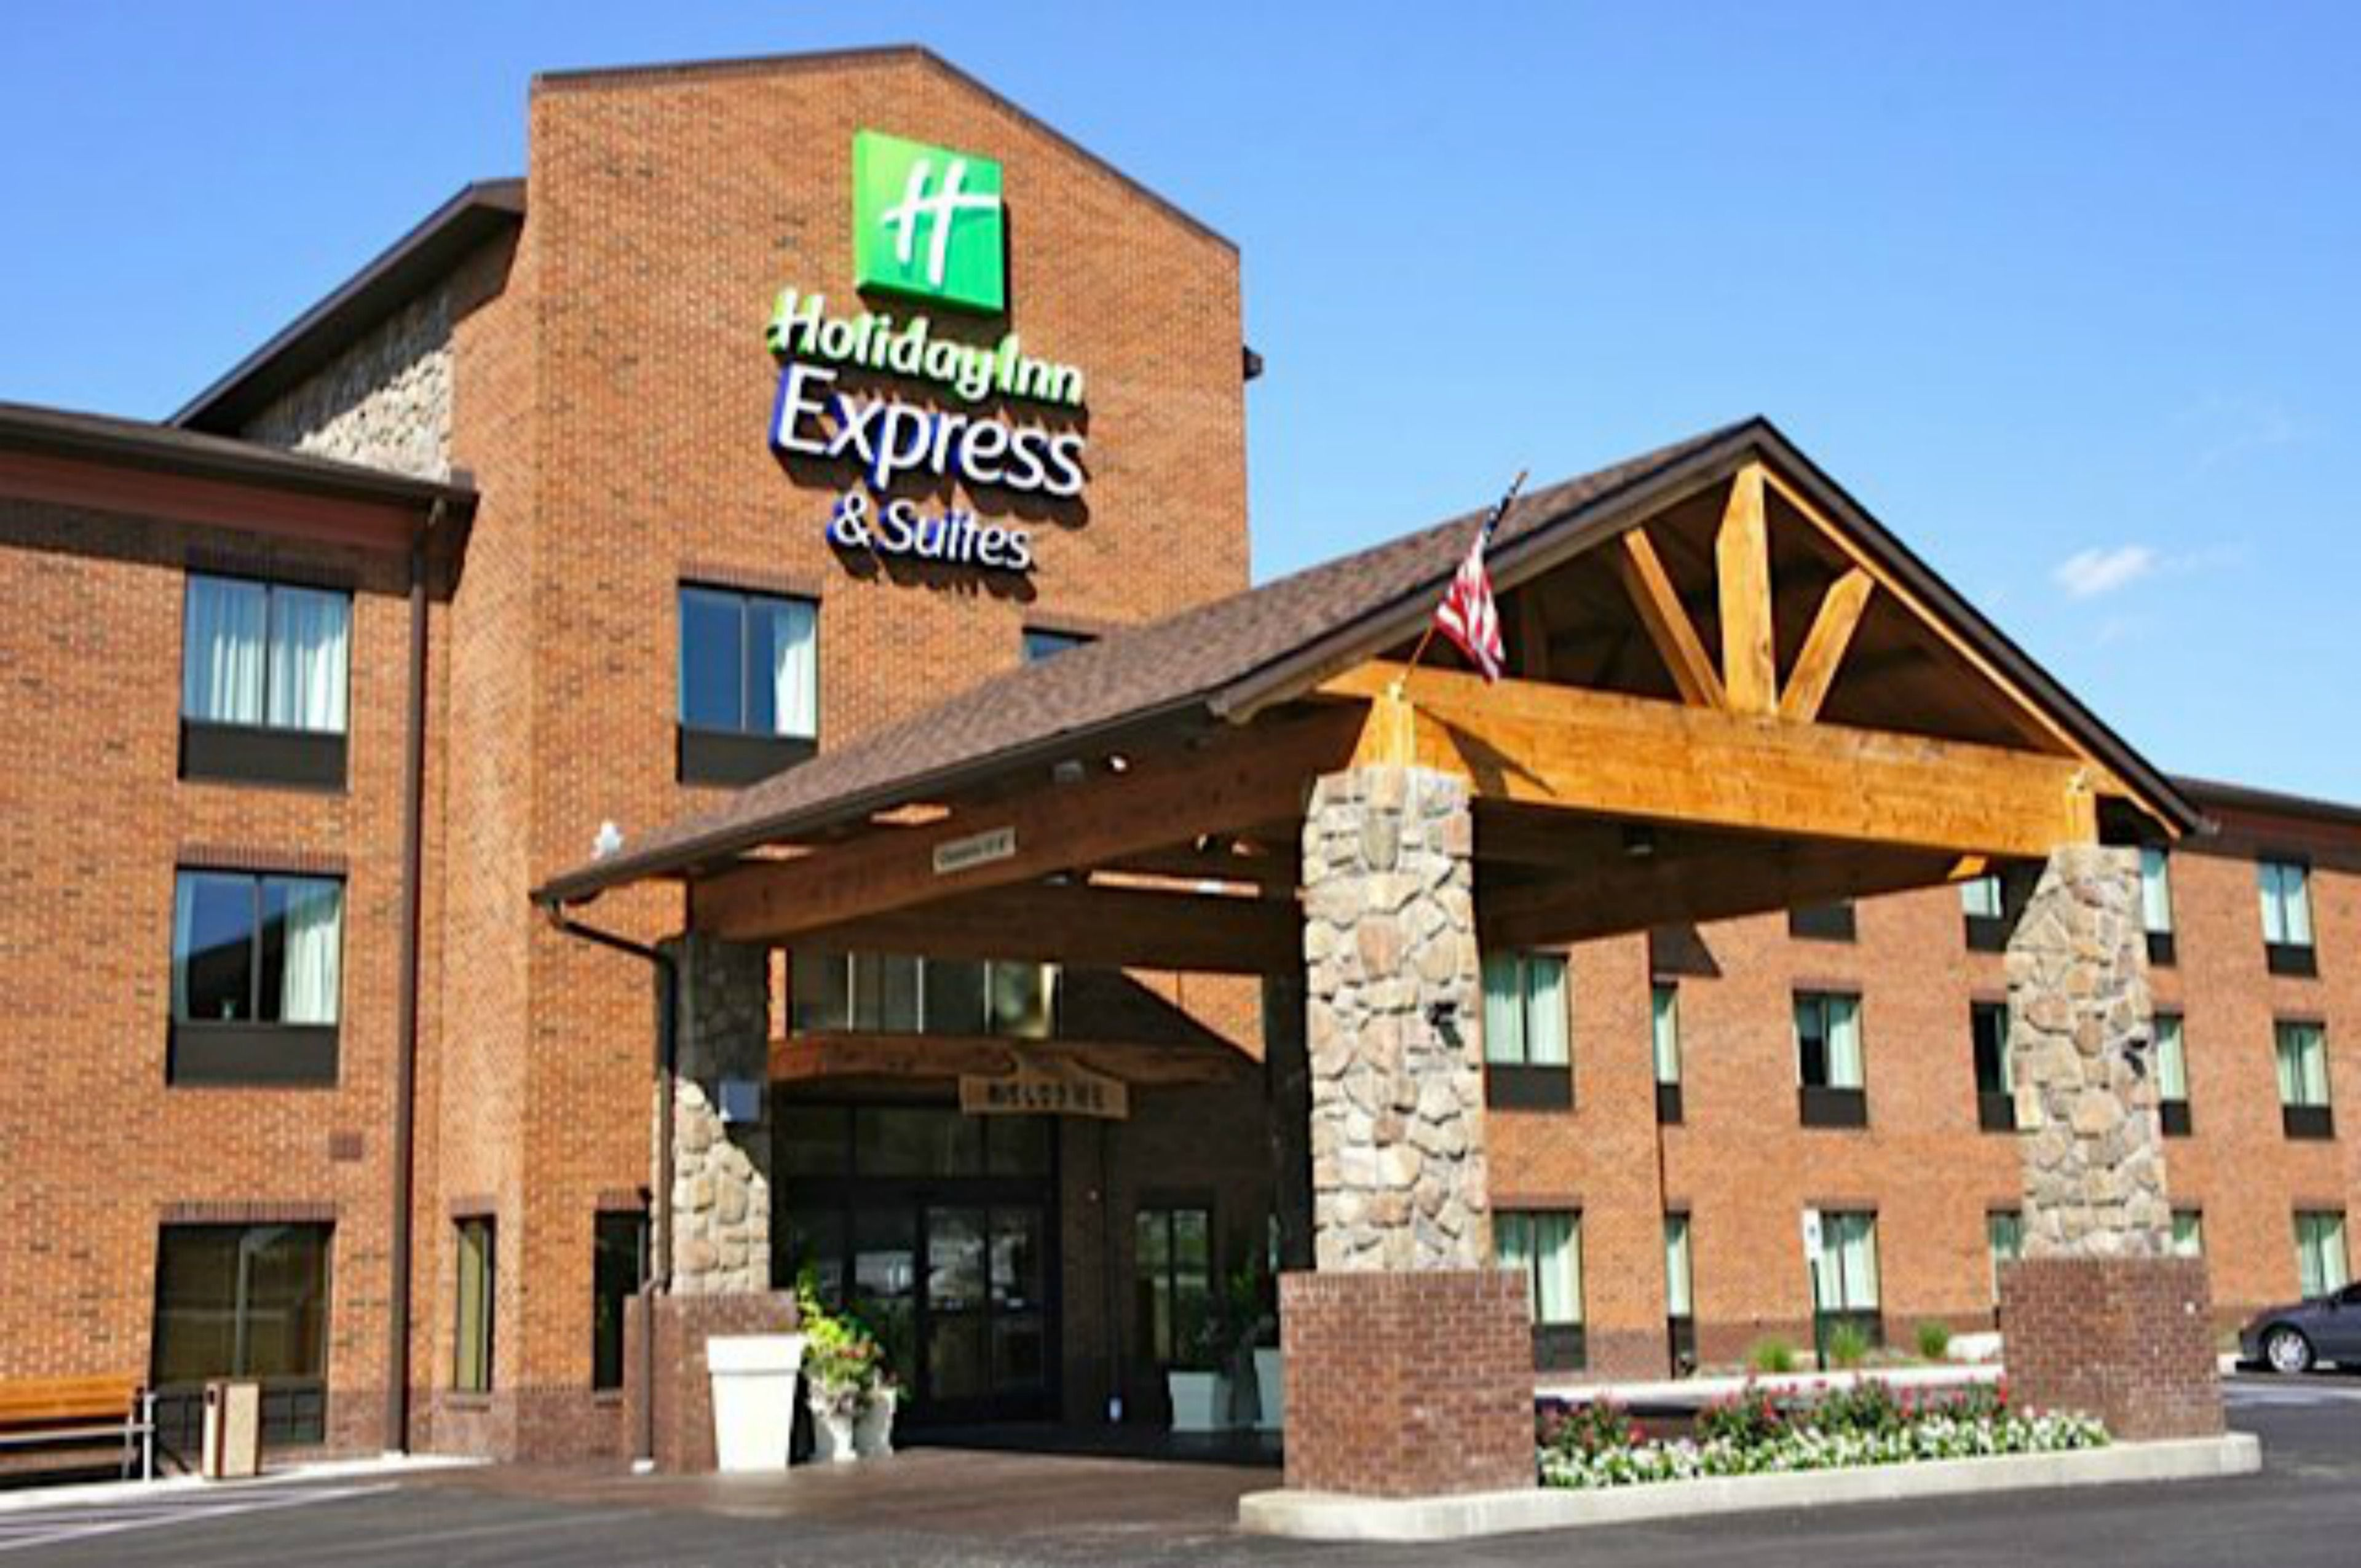 Holiday Inn Express & Suites Dinuba West image 5